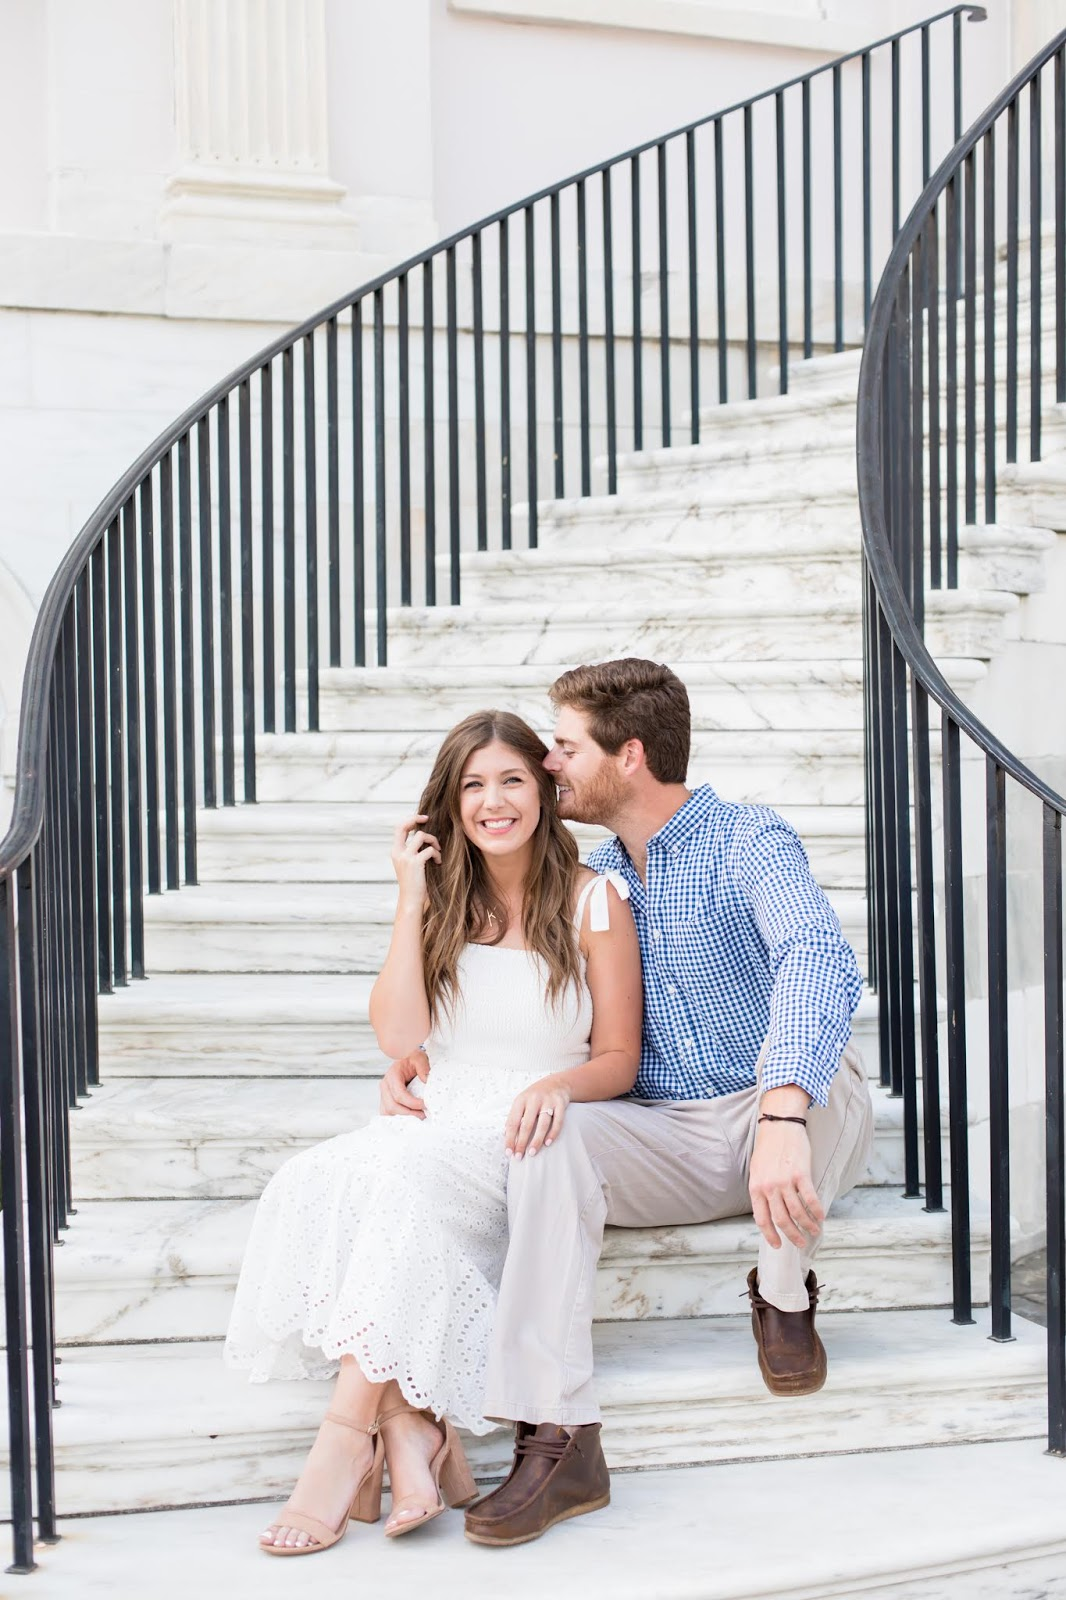 Engagement Photoshoot in Downtown Charleston - Chasing Cinderella